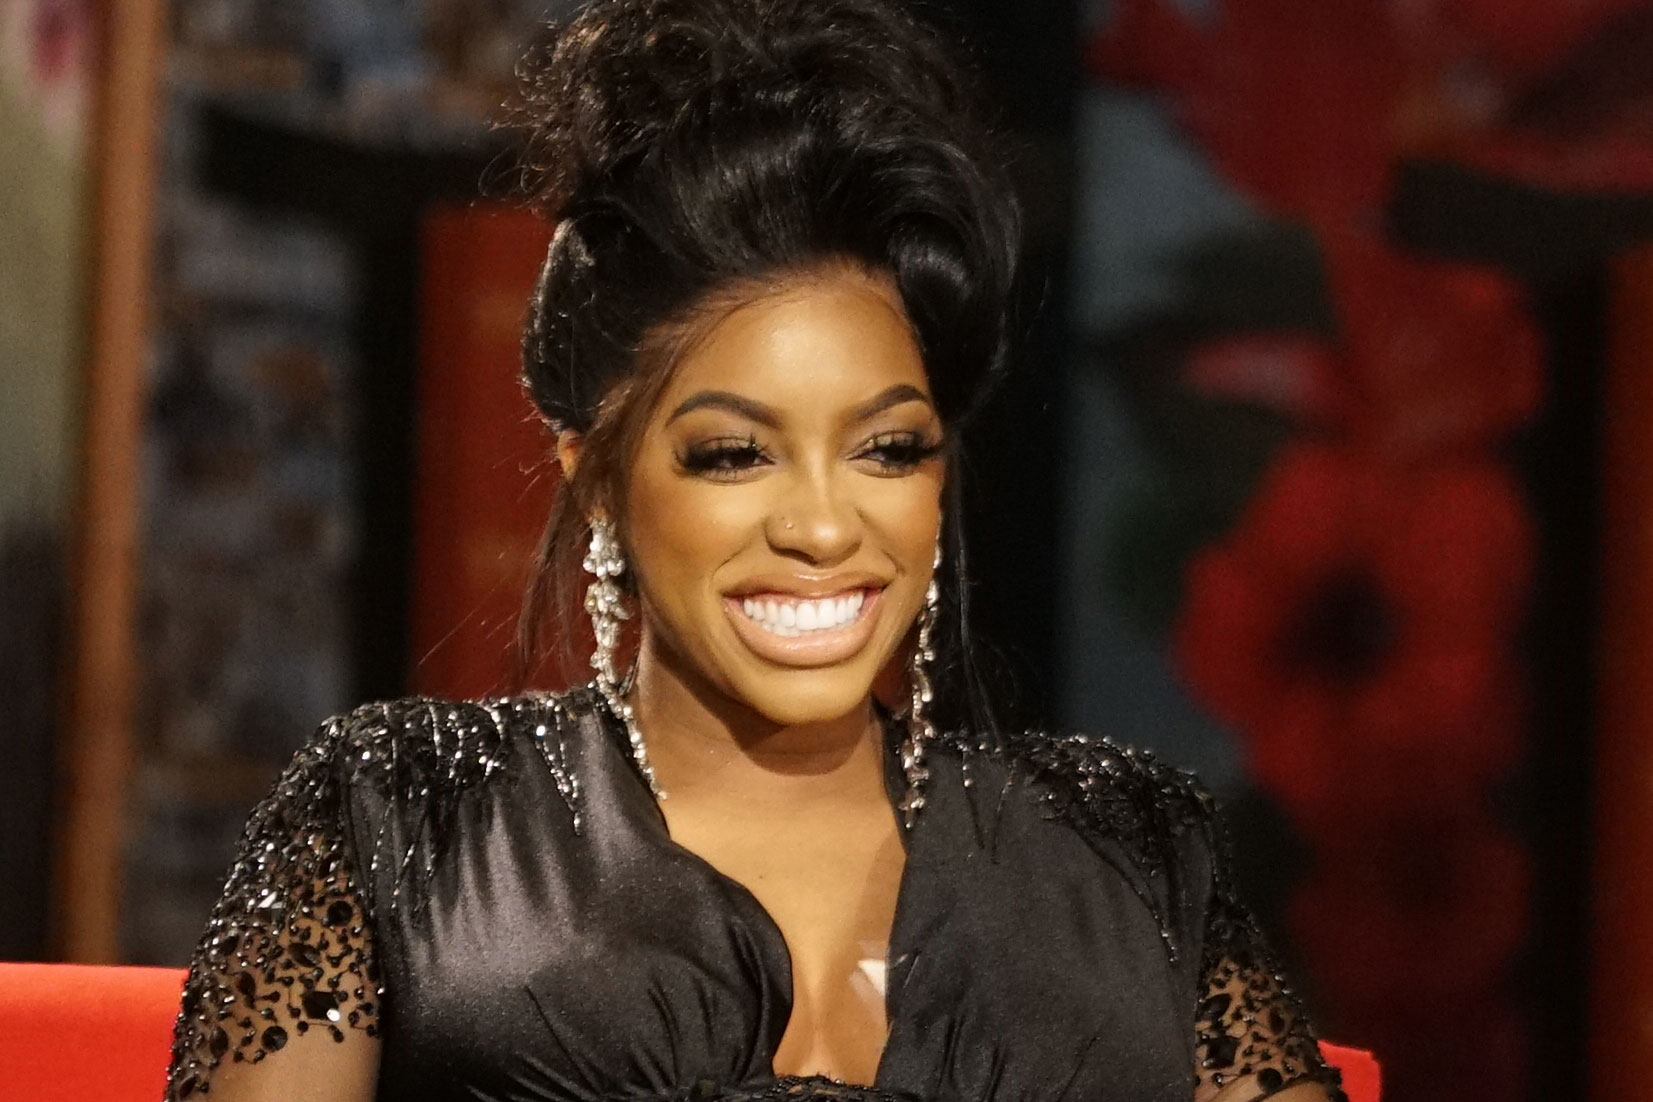 porsha-williams-allegedly-owes-240k-in-taxes-irs-threatens-lien-on-her-house-photo